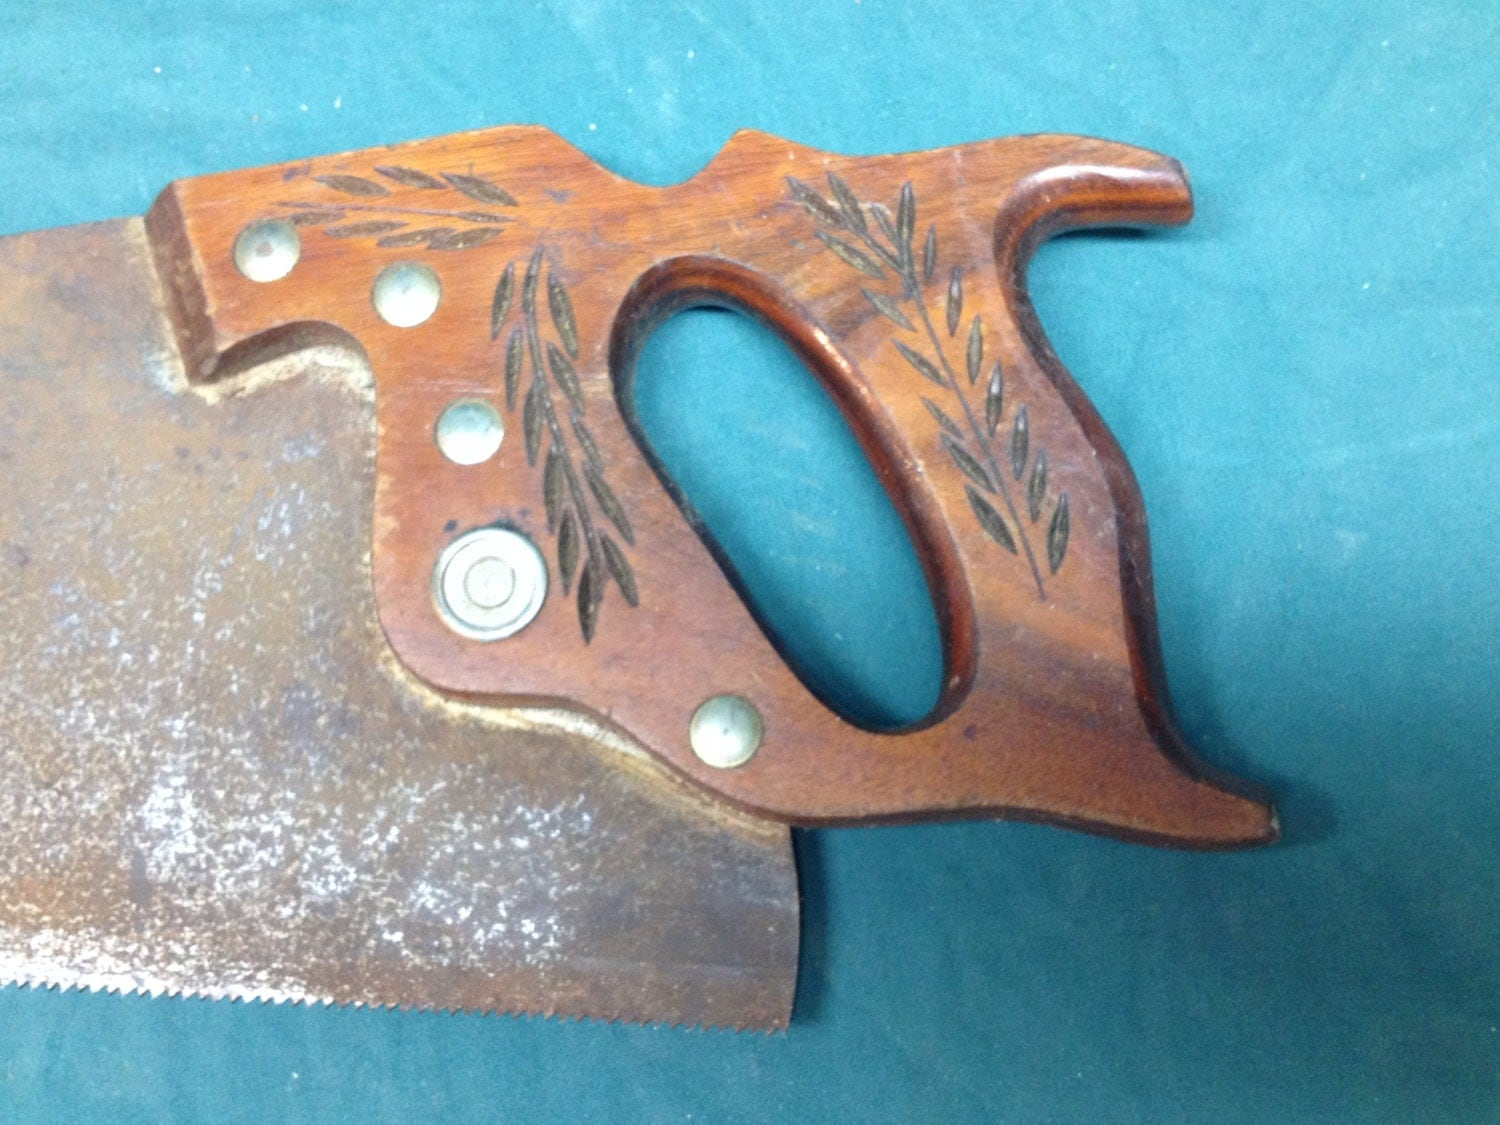 Vintage Warranted Superior Hand Saw W Wheat Carvings Rusty